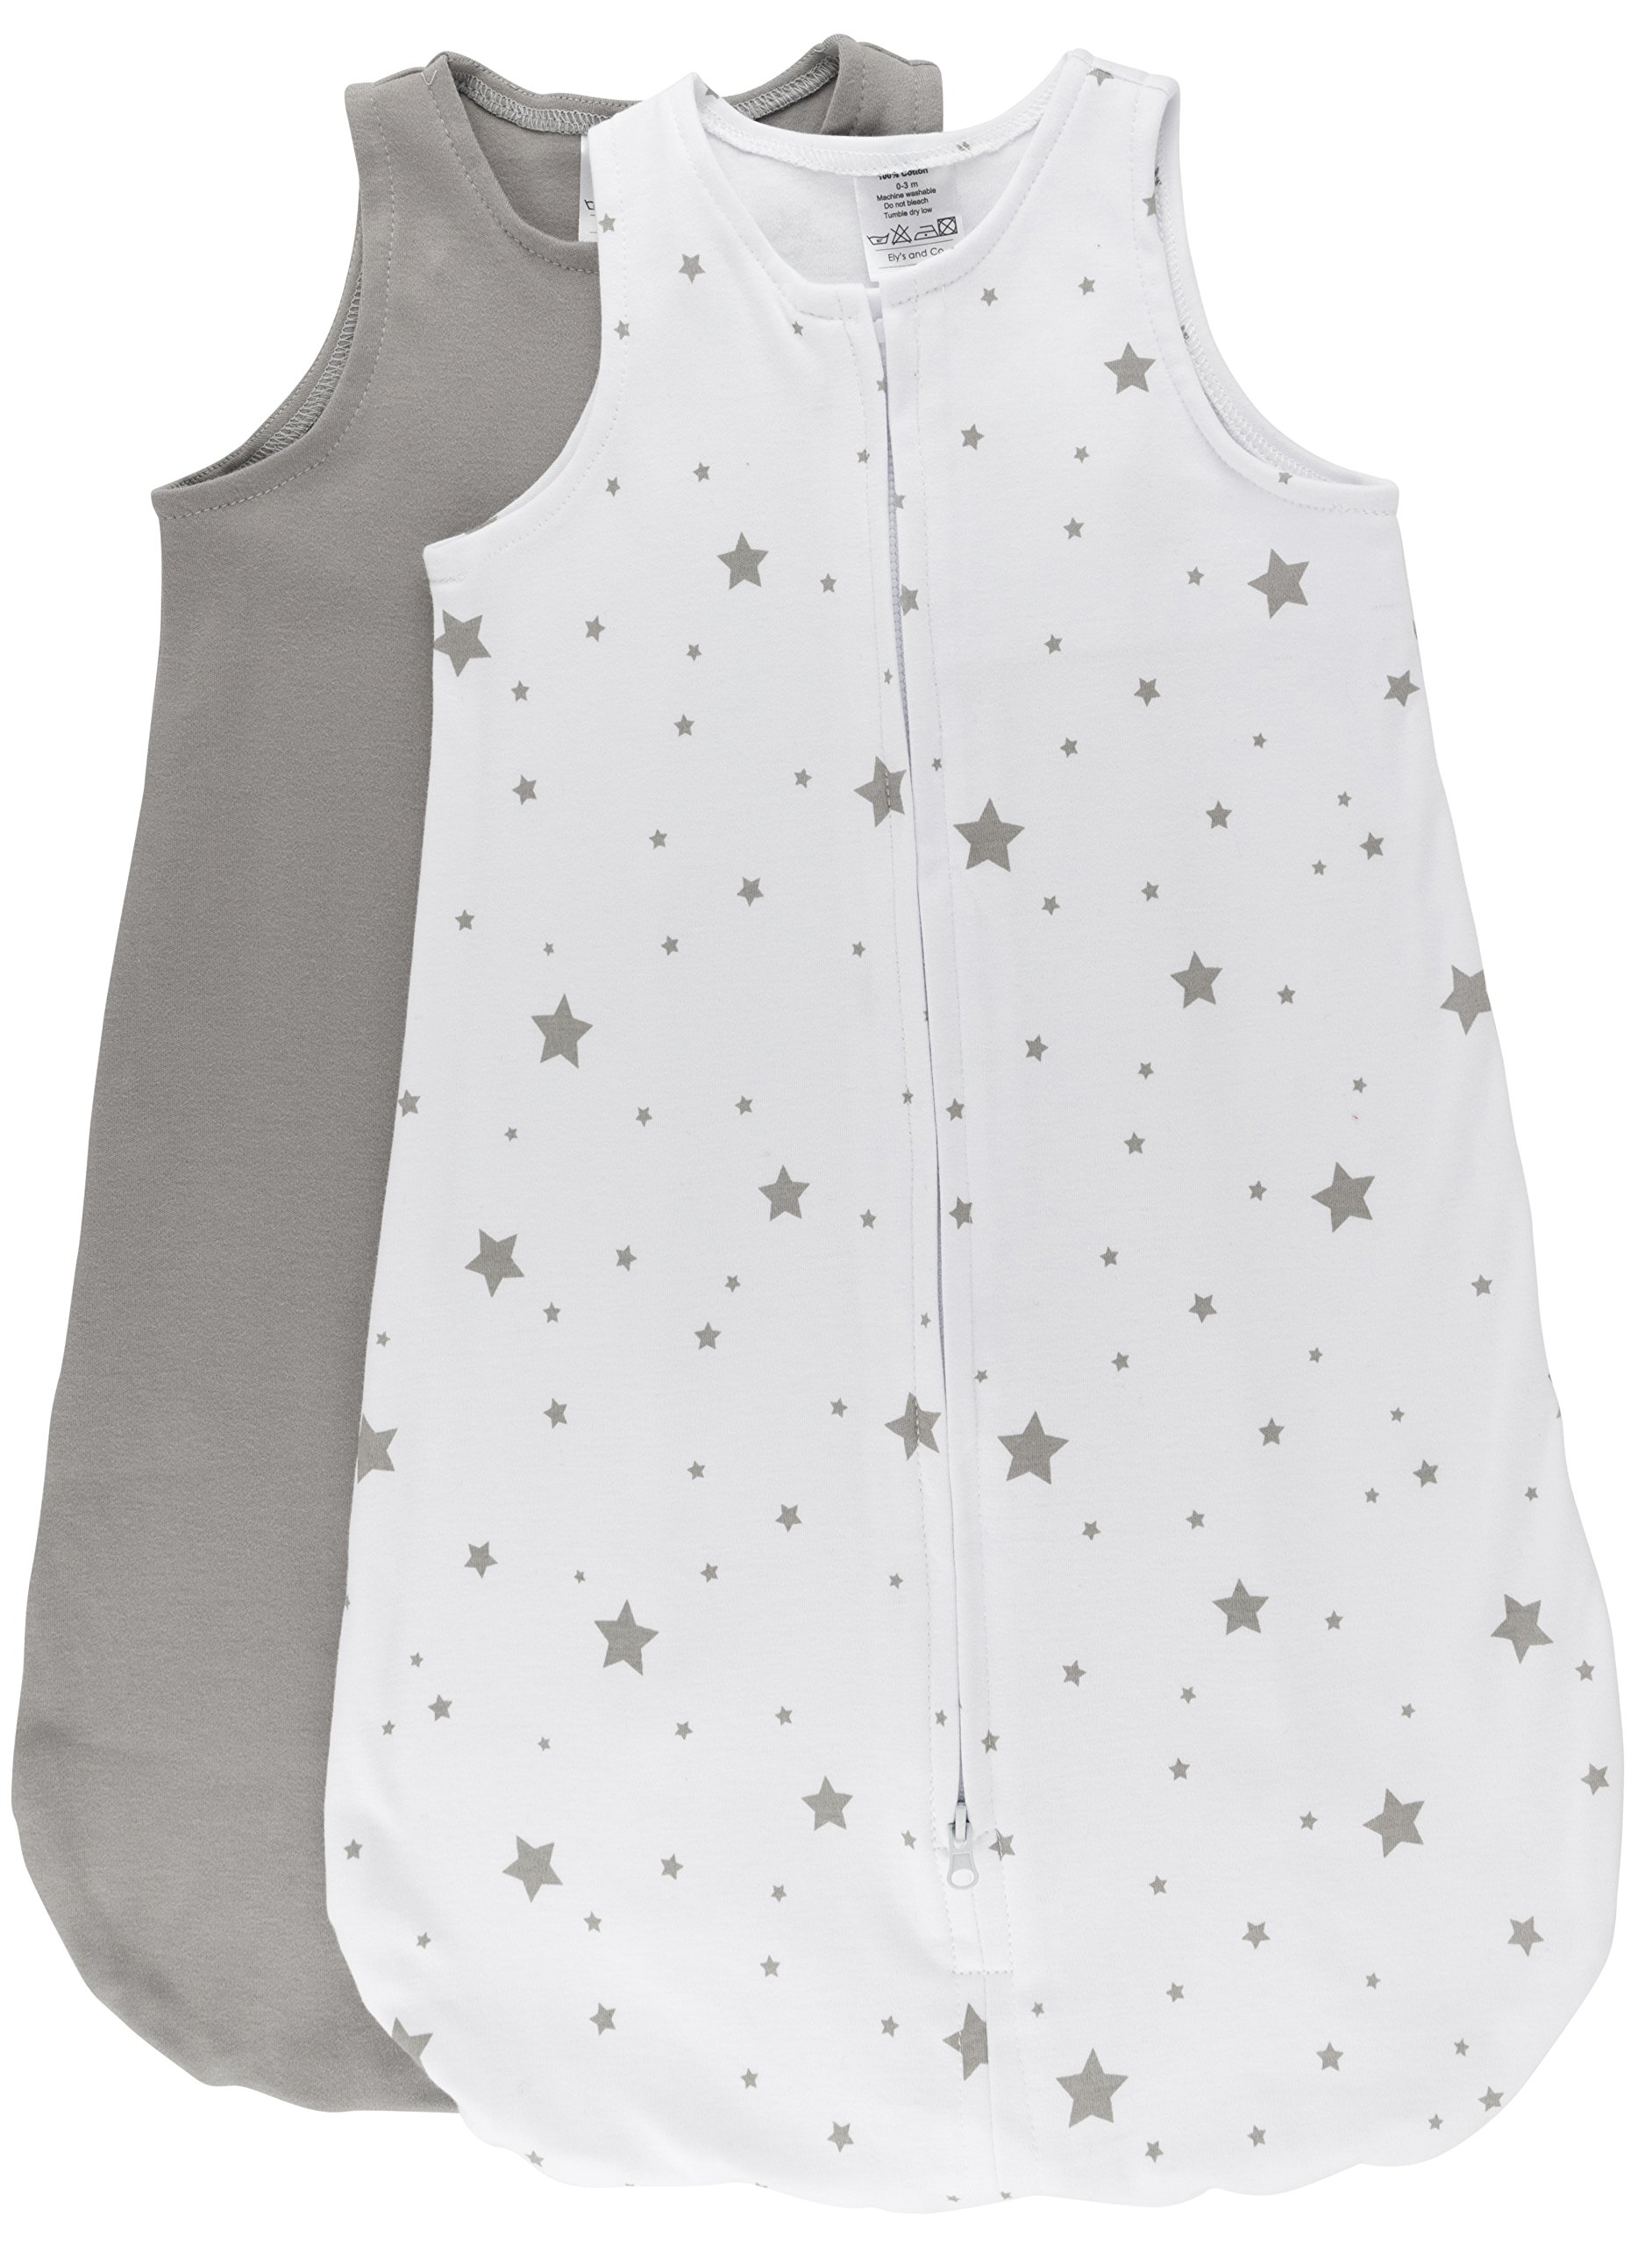 100% Cotton Wearable Blanket Baby Sleep Bag Grey Stars 2 Pack (6-12 Months)